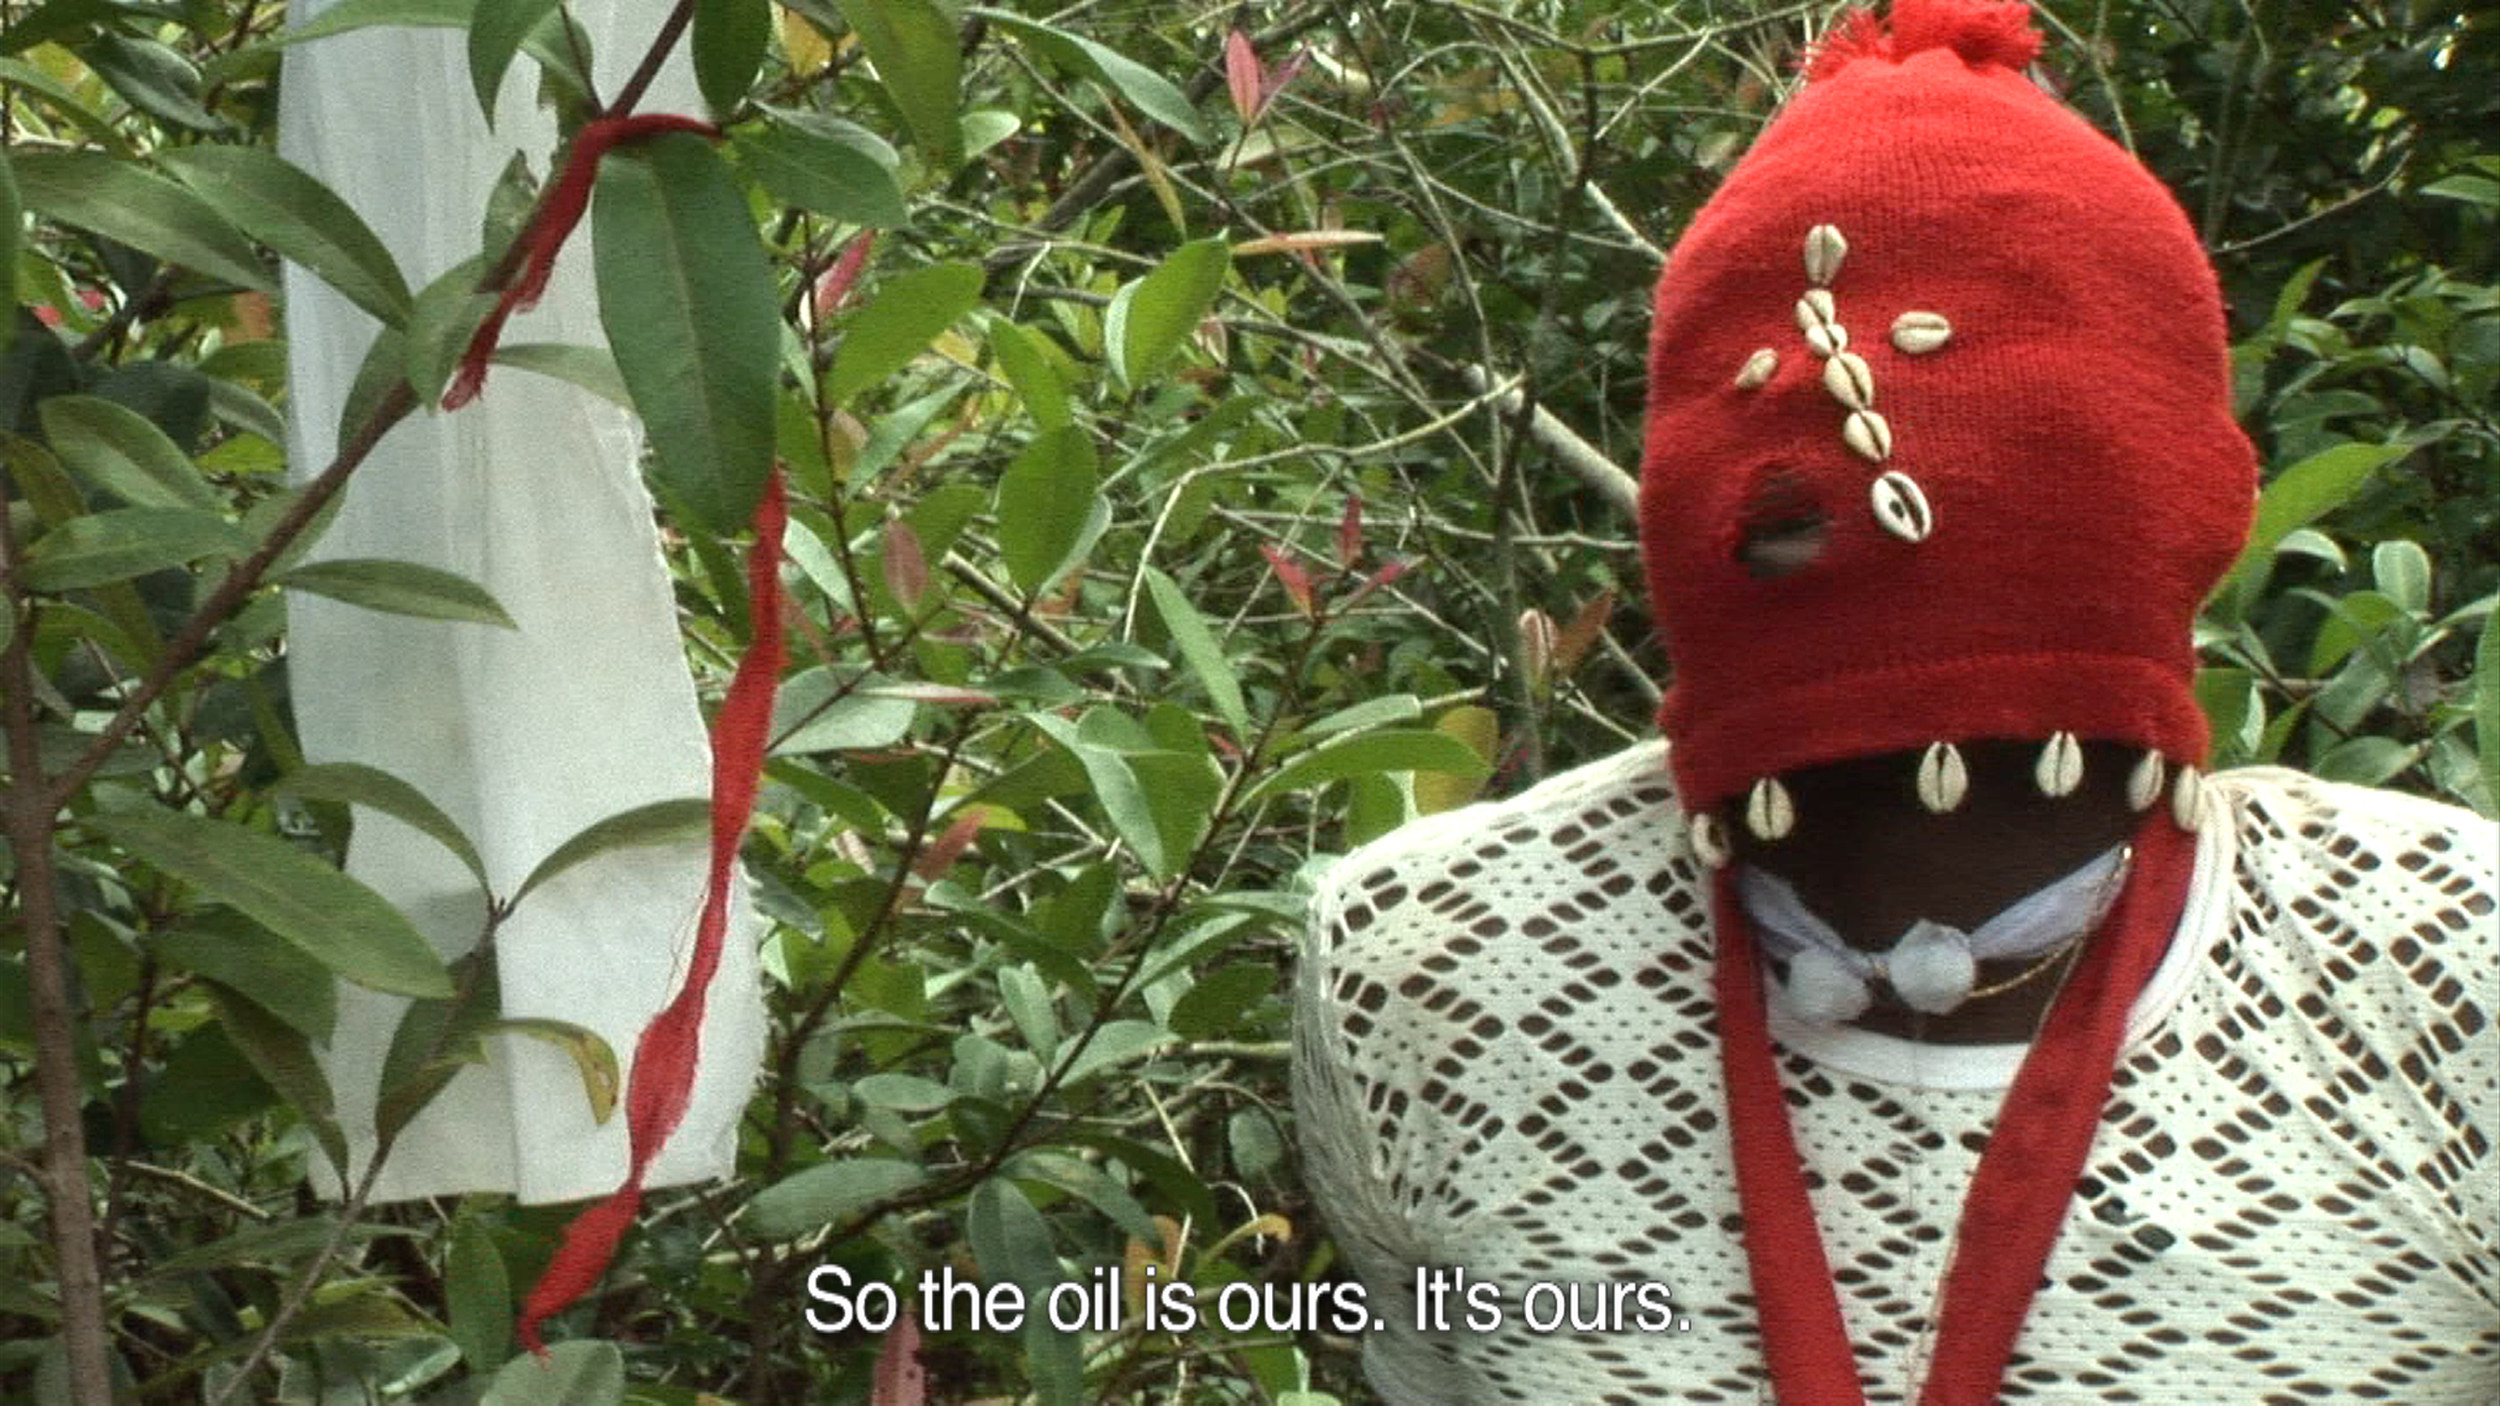 The oil is ours.jpg